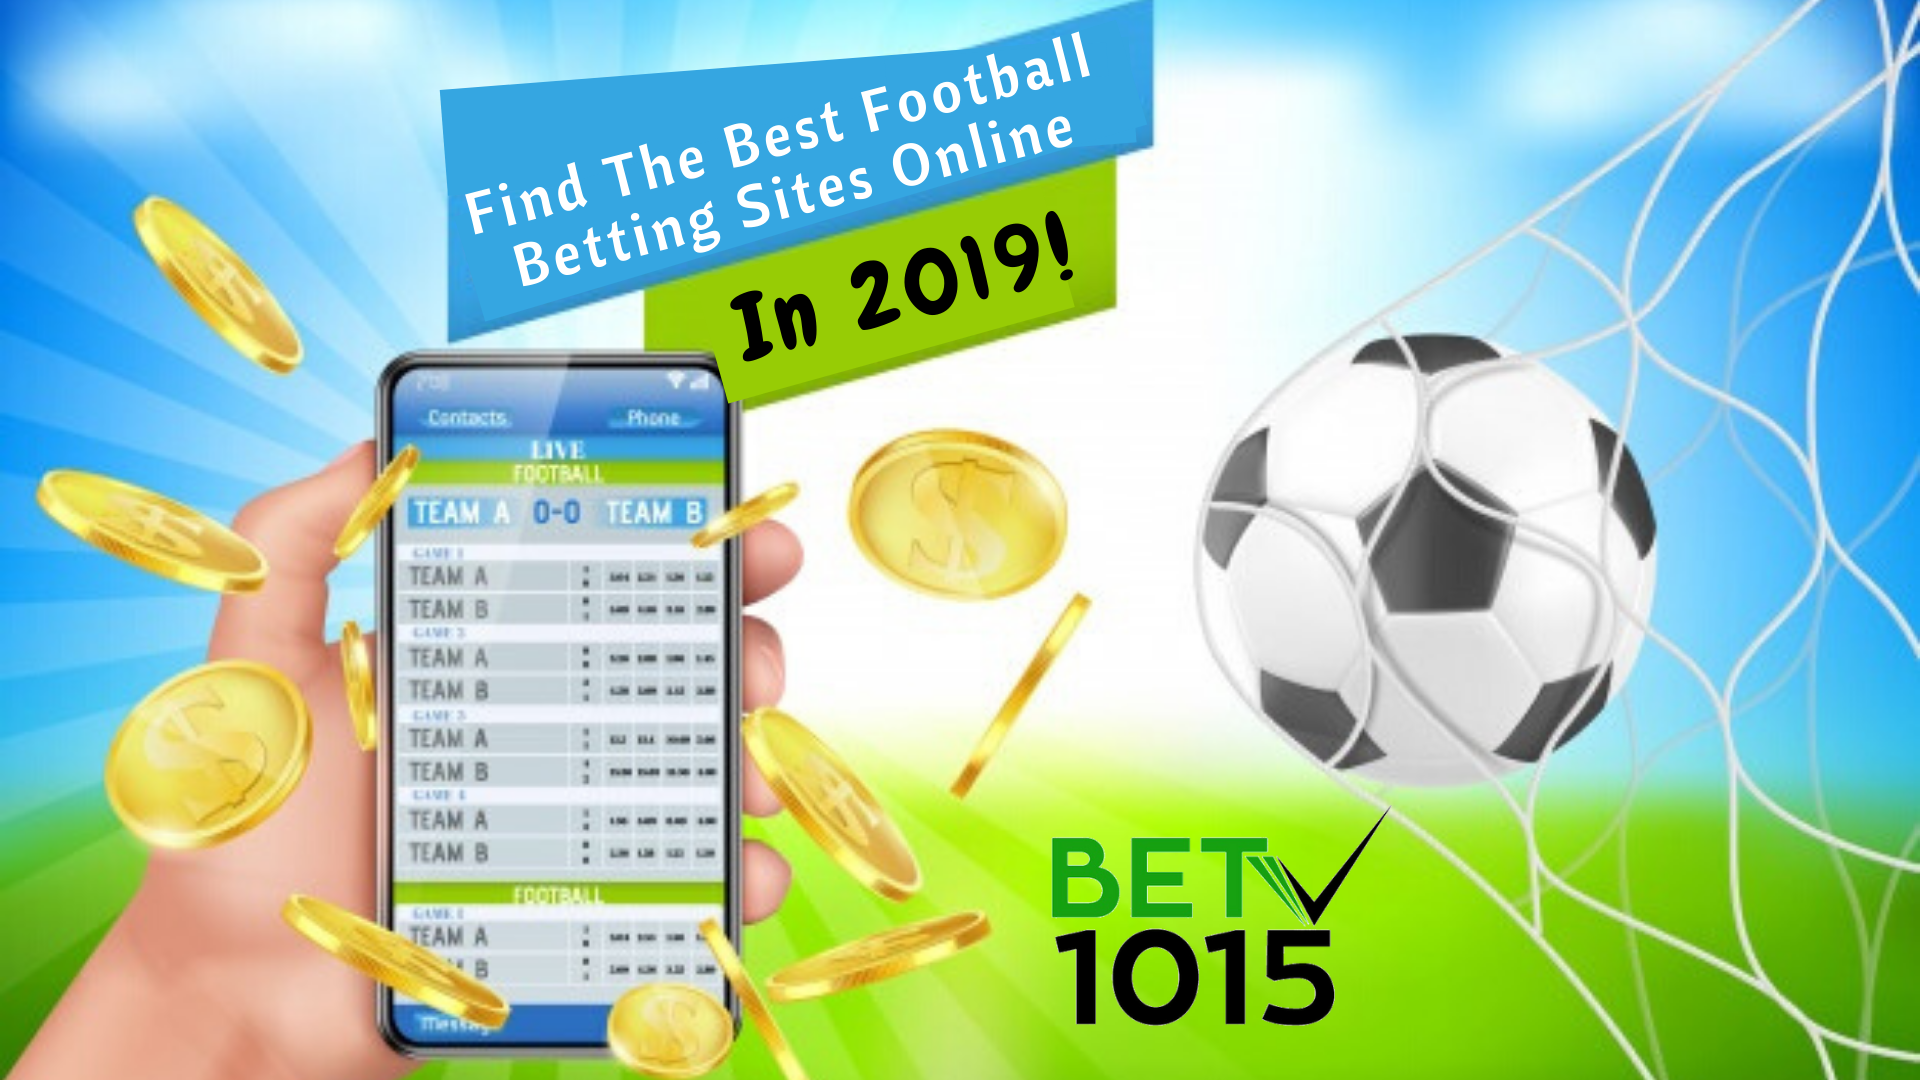 Best Football Betting Sites Top UK Bookies for Football